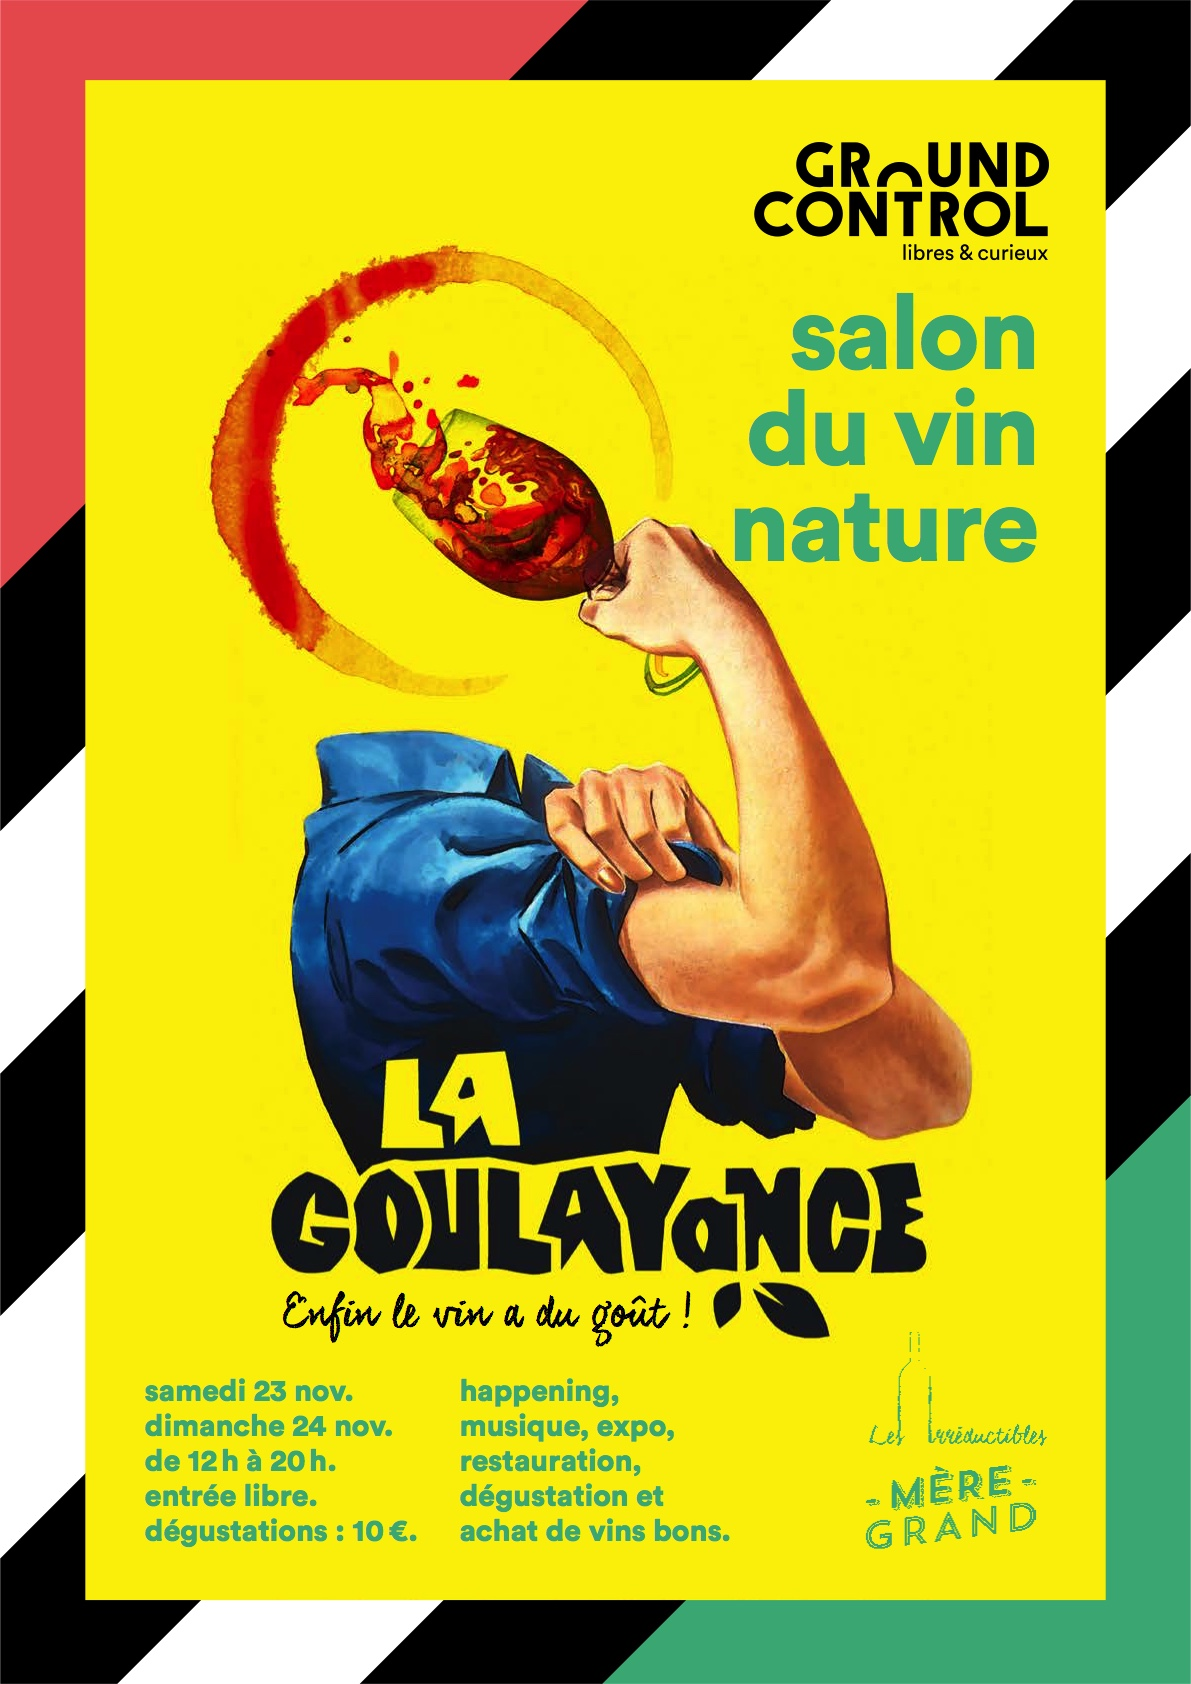 La Goulayance_winefair Paris